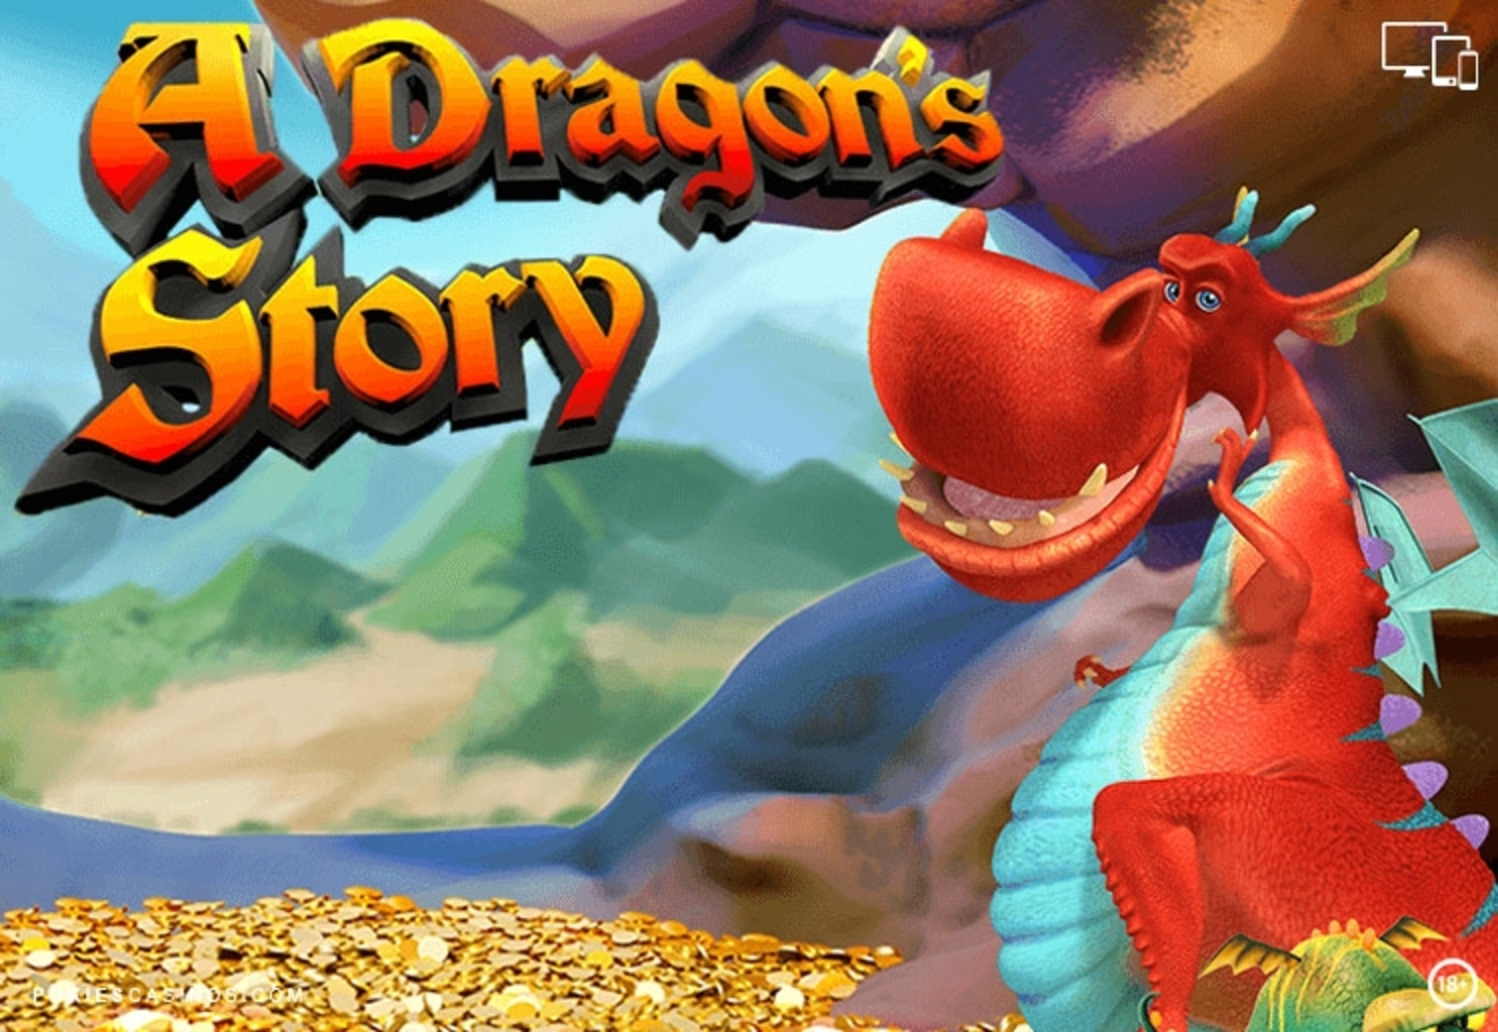 A Dragon Story Online Slot Demo Game by NextGen Gaming